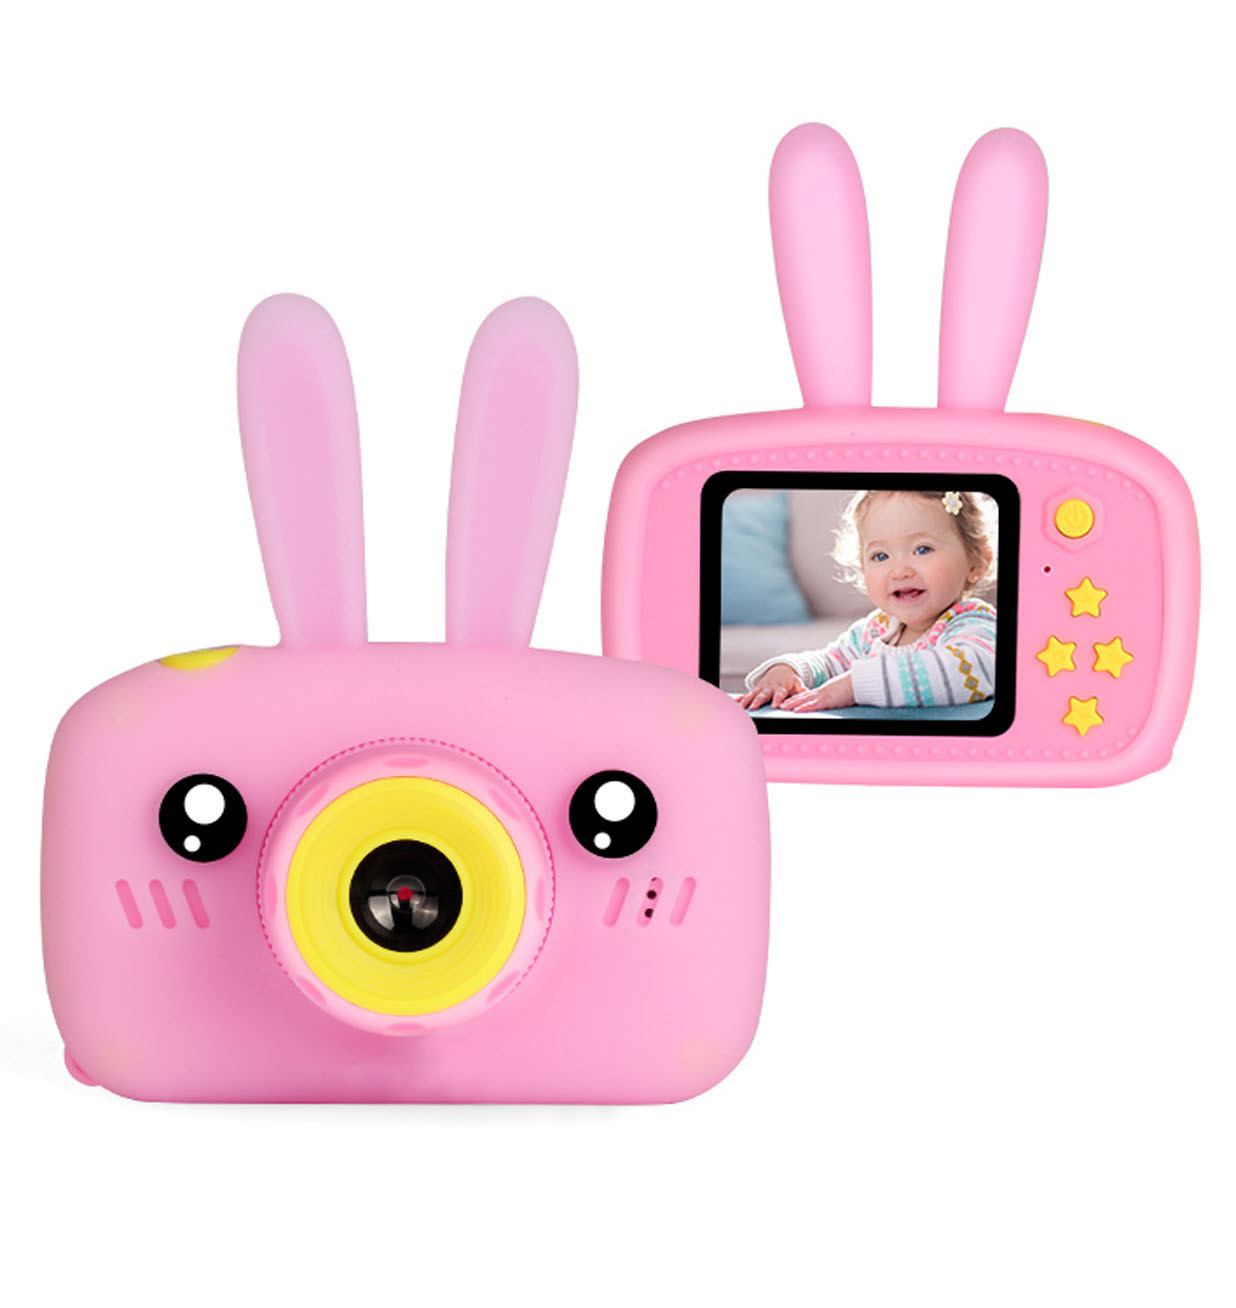 Kids Toys Rechargeable Children Digital Cameras With Rabbit Cover Camera Toys For Kids Children's Photos Educational  Z0724